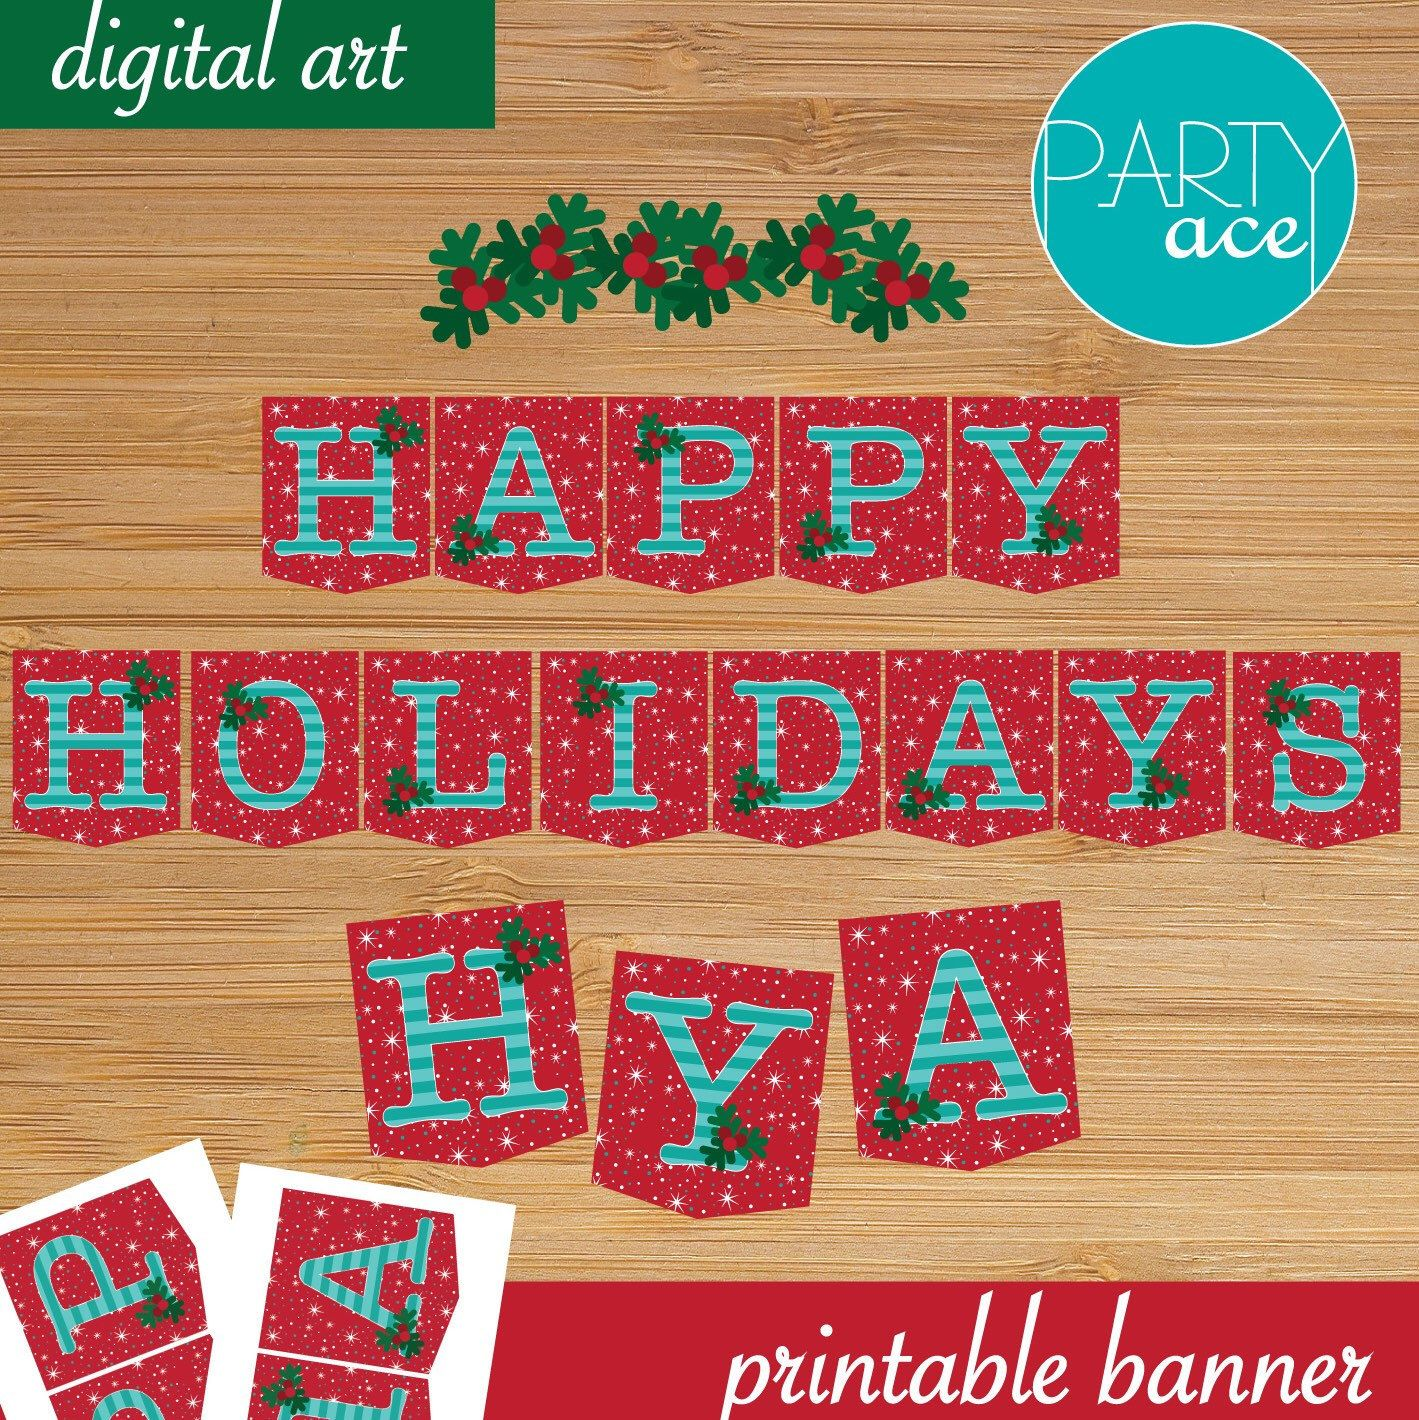 image regarding Happy Holidays Banner Printable identify Partyace shared a fresh picture upon Bulletin Board Family vacation